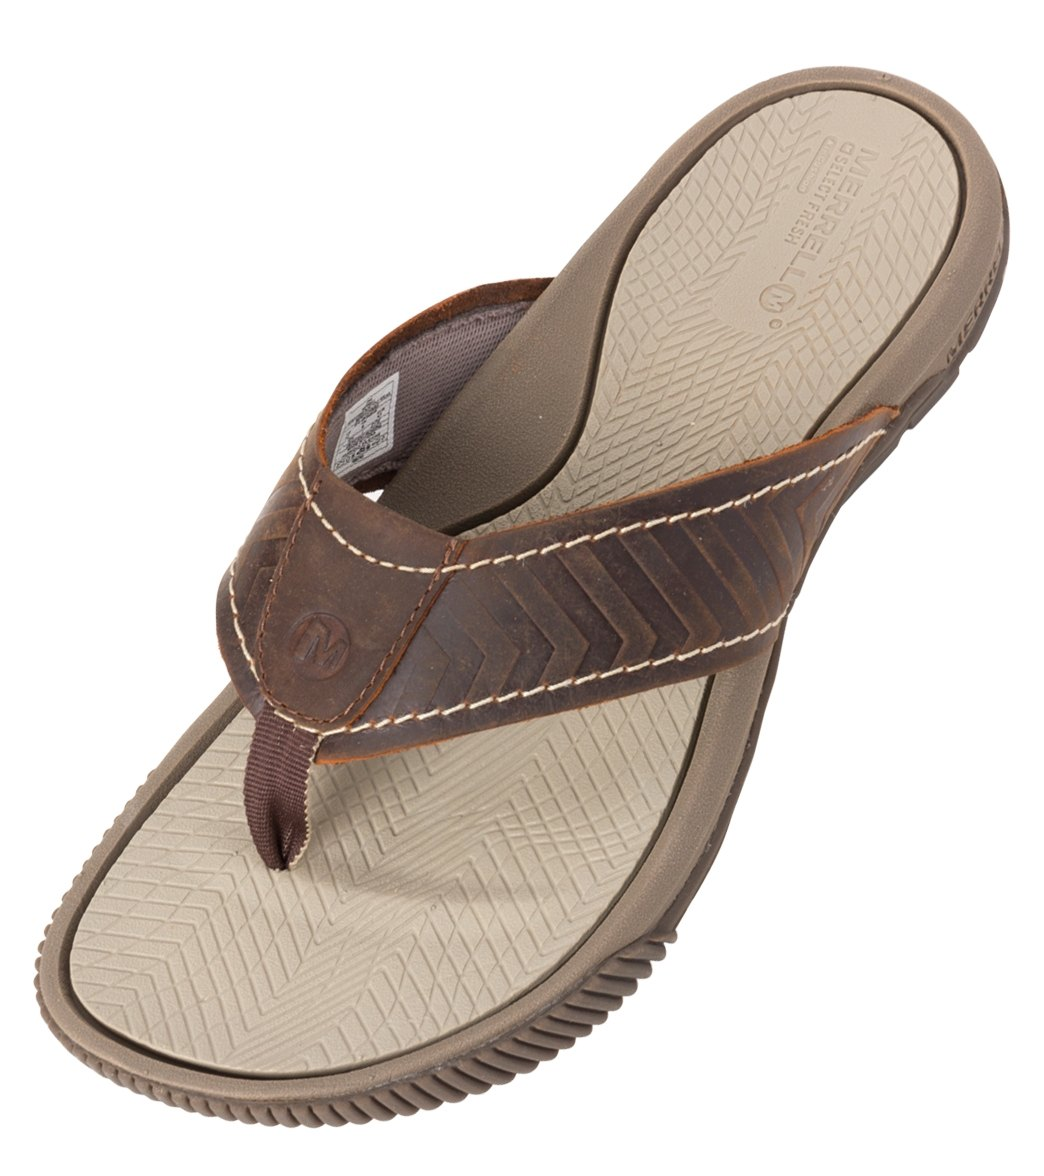 17843ea637d7 Merrell Men s Terracove Jet Flip Flop at SwimOutlet.com - Free Shipping